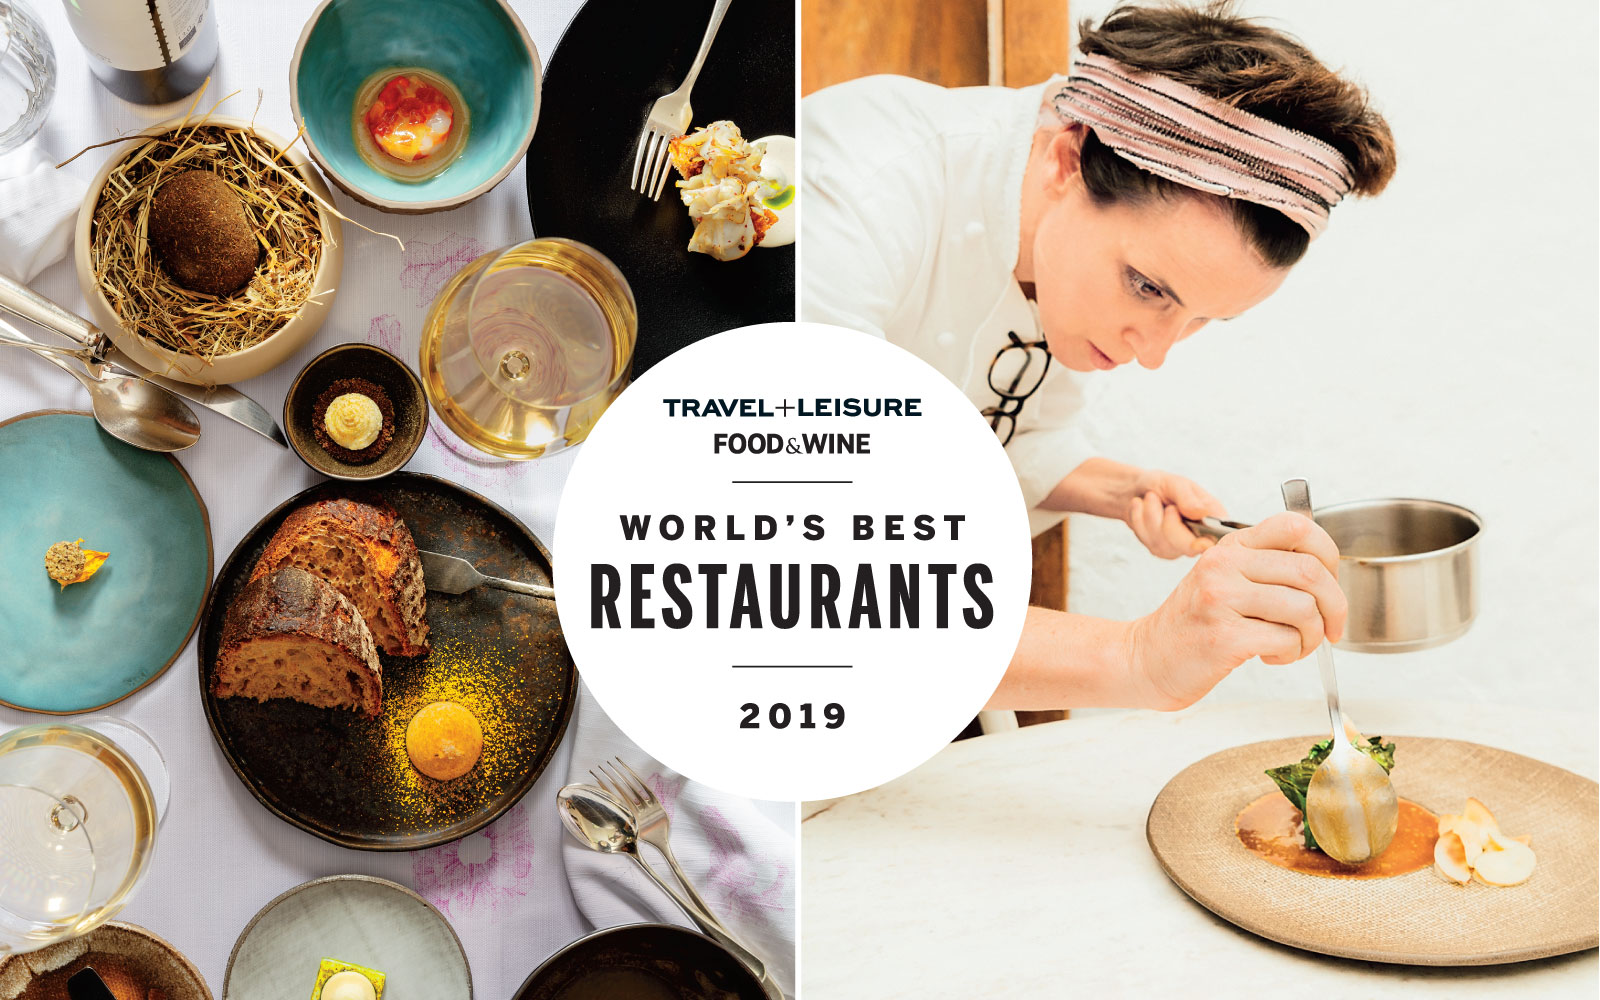 World's Best Restaurants 2019